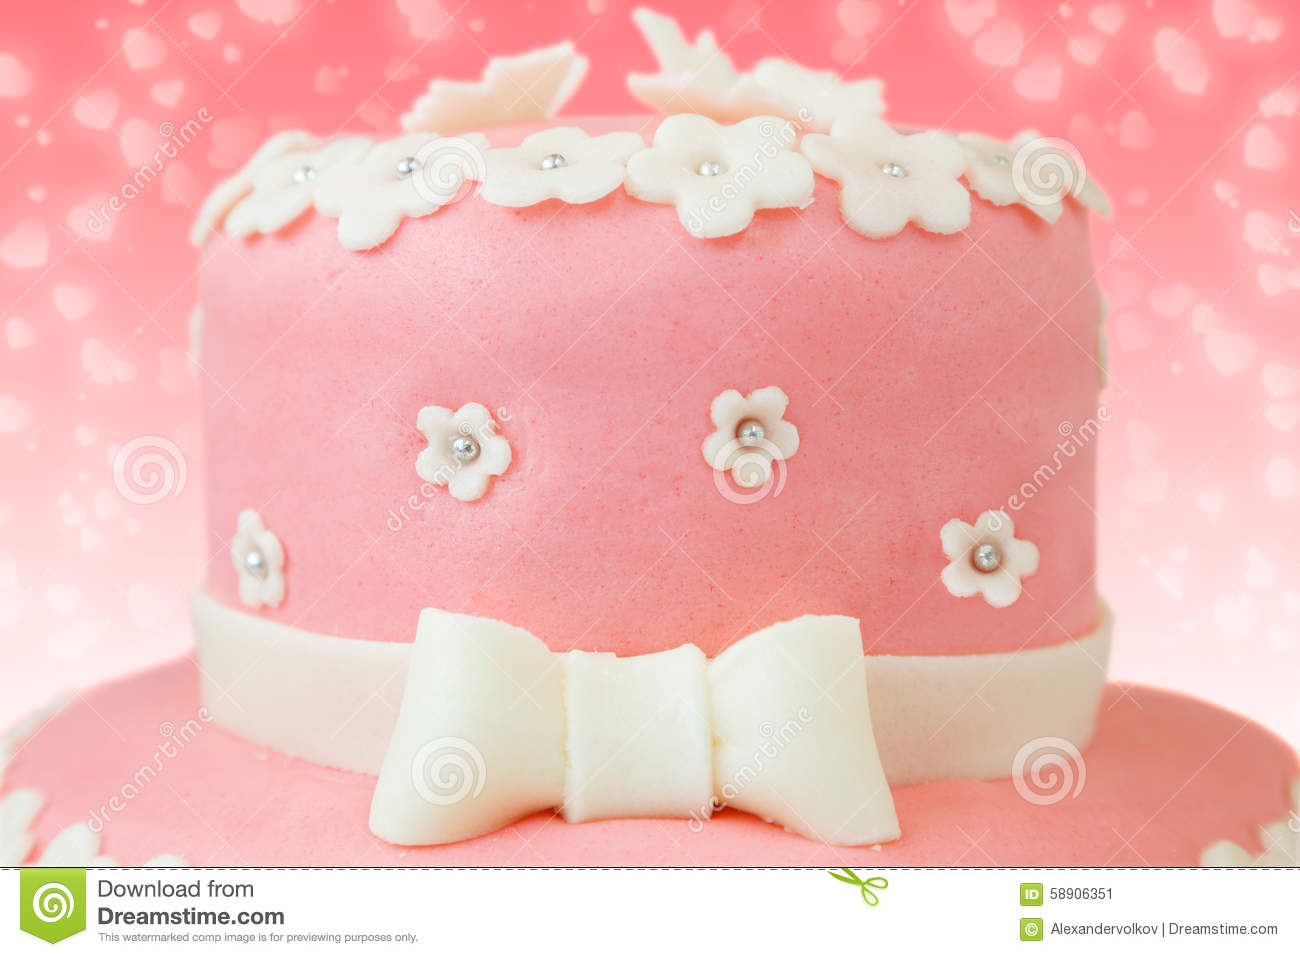 Pink cake with flower and butterfly decor stock image image of pink cake with flower and butterfly decor izmirmasajfo